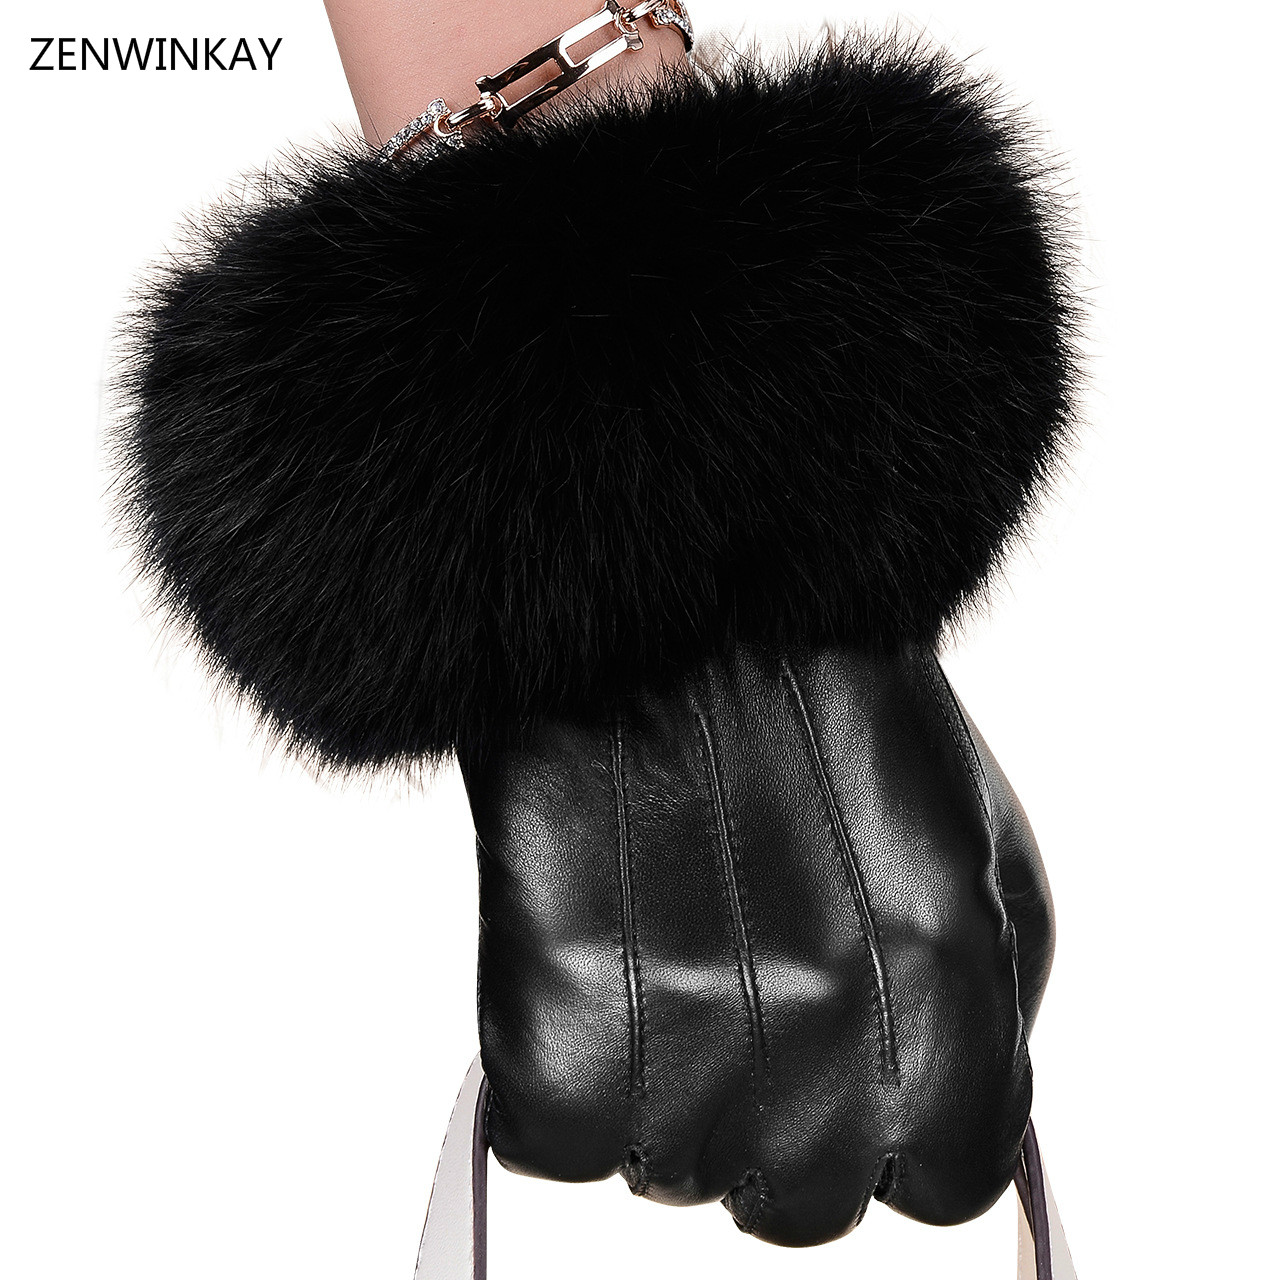 Womens leather touchscreen gloves - 2017 Fashion Women Leather Gloves Touch Screen Genuine Leather Ladies Gloves Touchscreen Women Winter Black Gloves